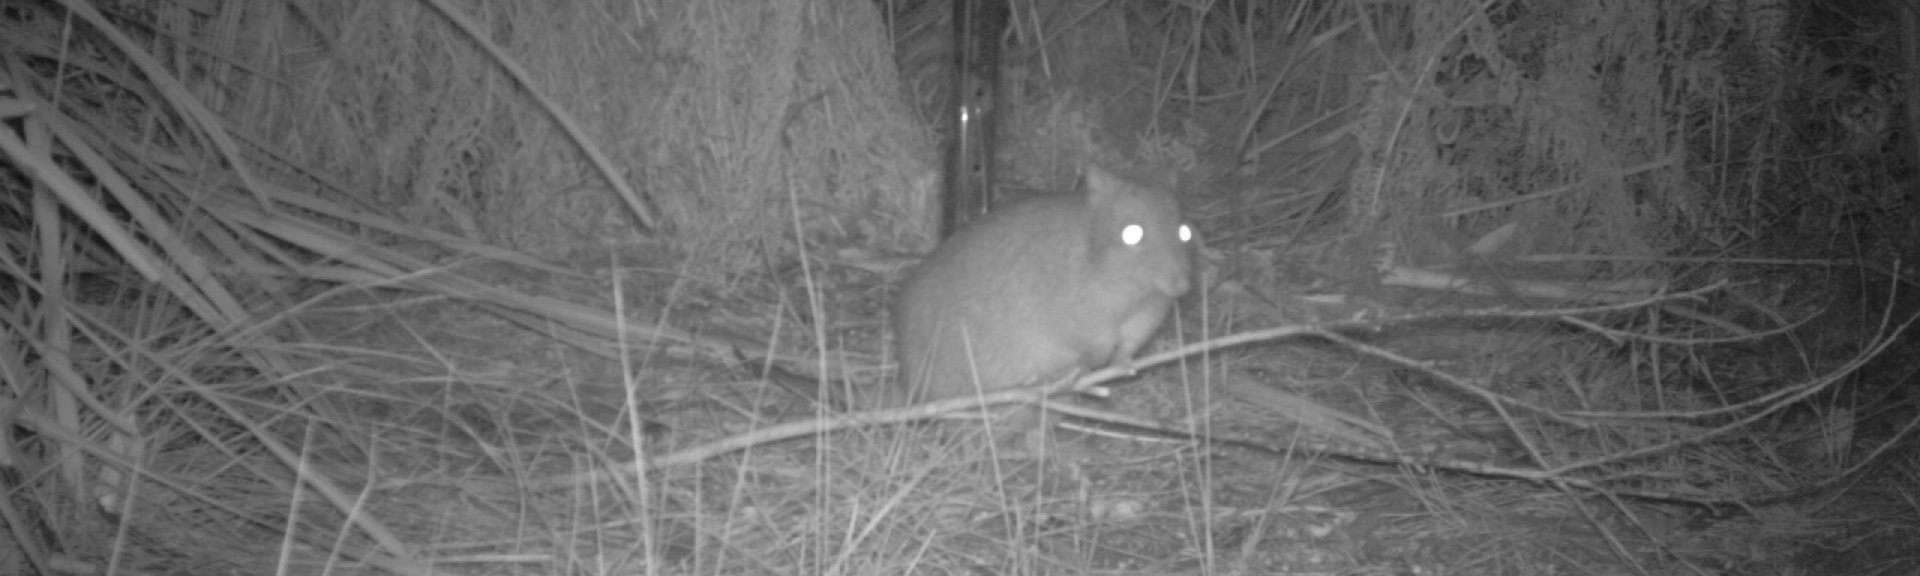 "Camera trap photo of ""Notchy"" the Long-nosed potoroo in Feb 2020"